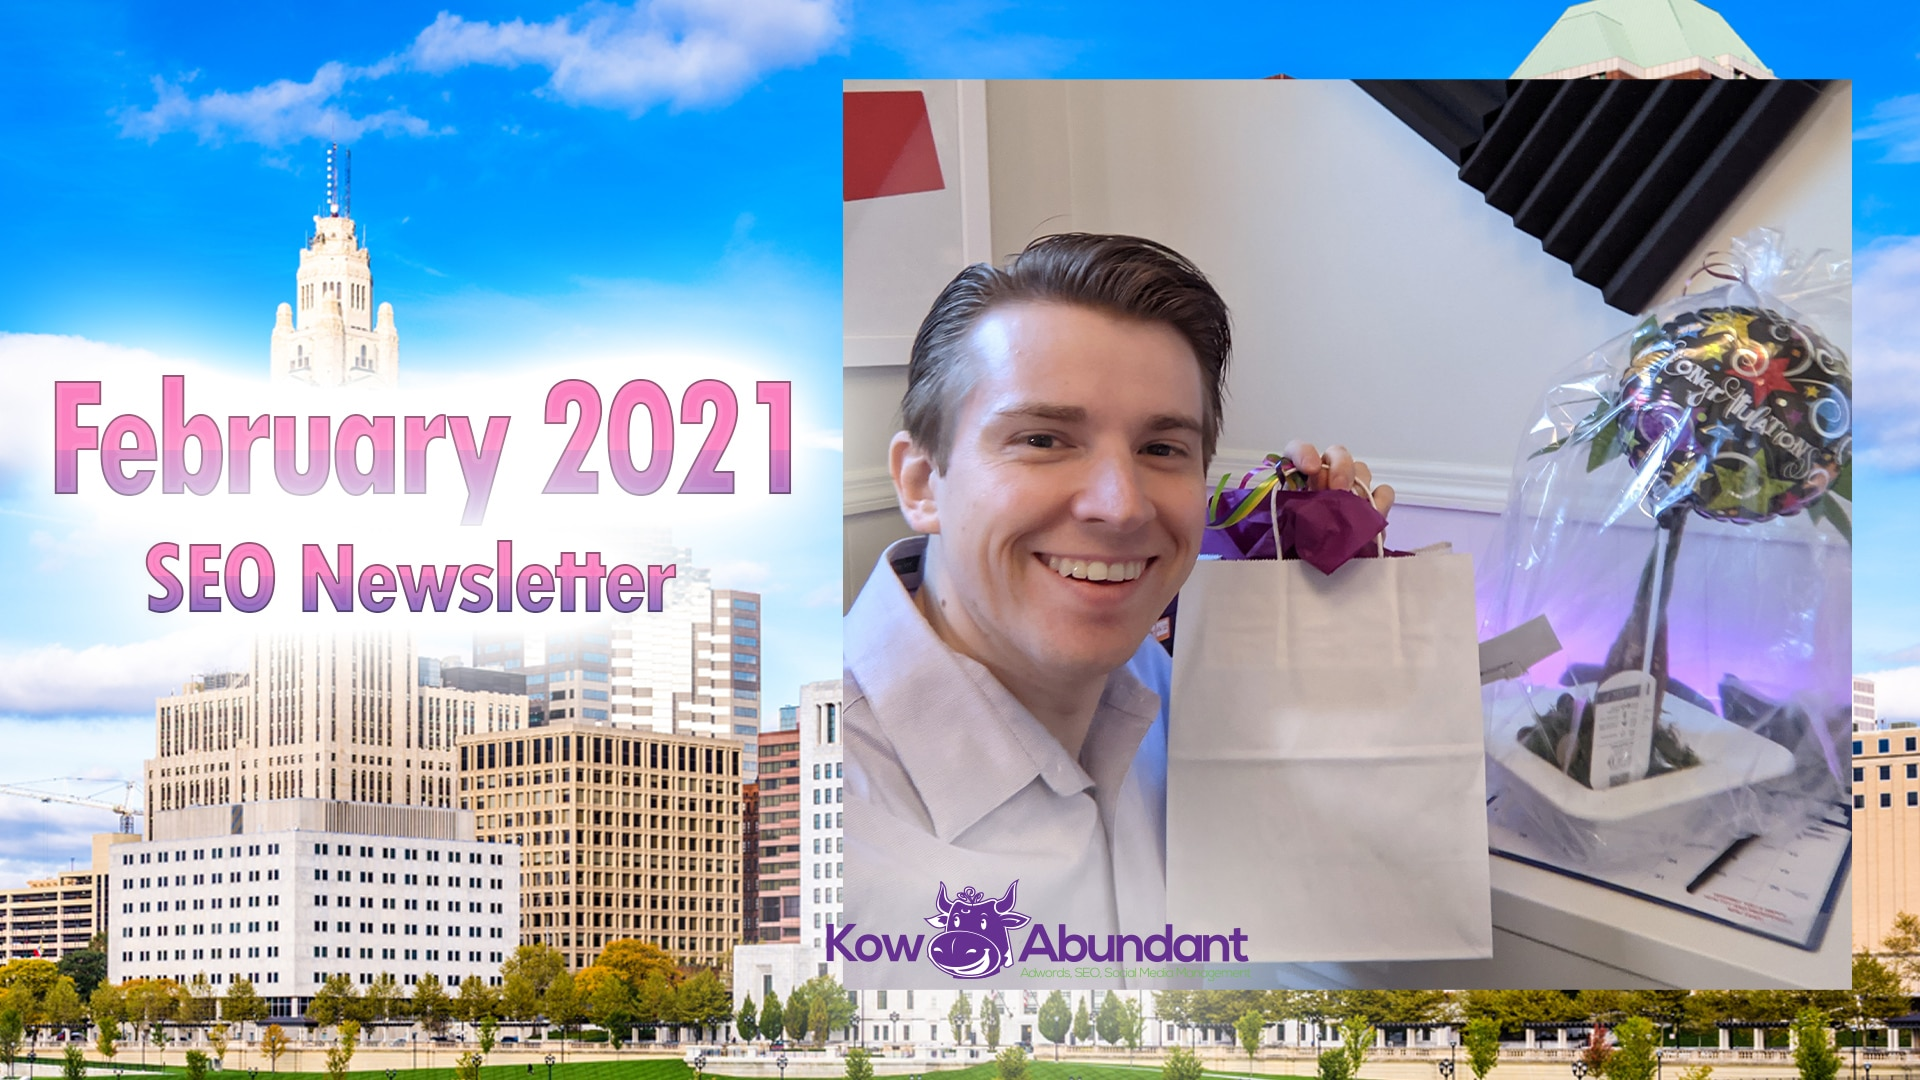 Feb2021 SEO Newsletter